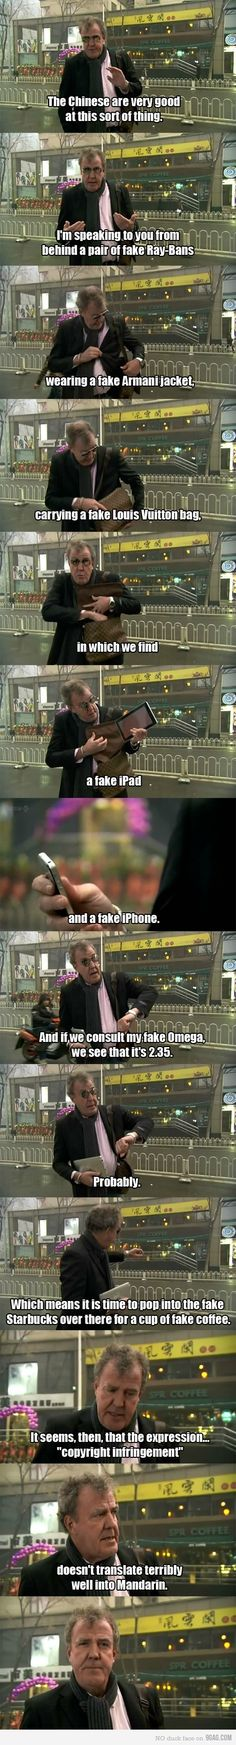 Top Gear, oh Jeremy Clarkson you never fail to make me laugh.